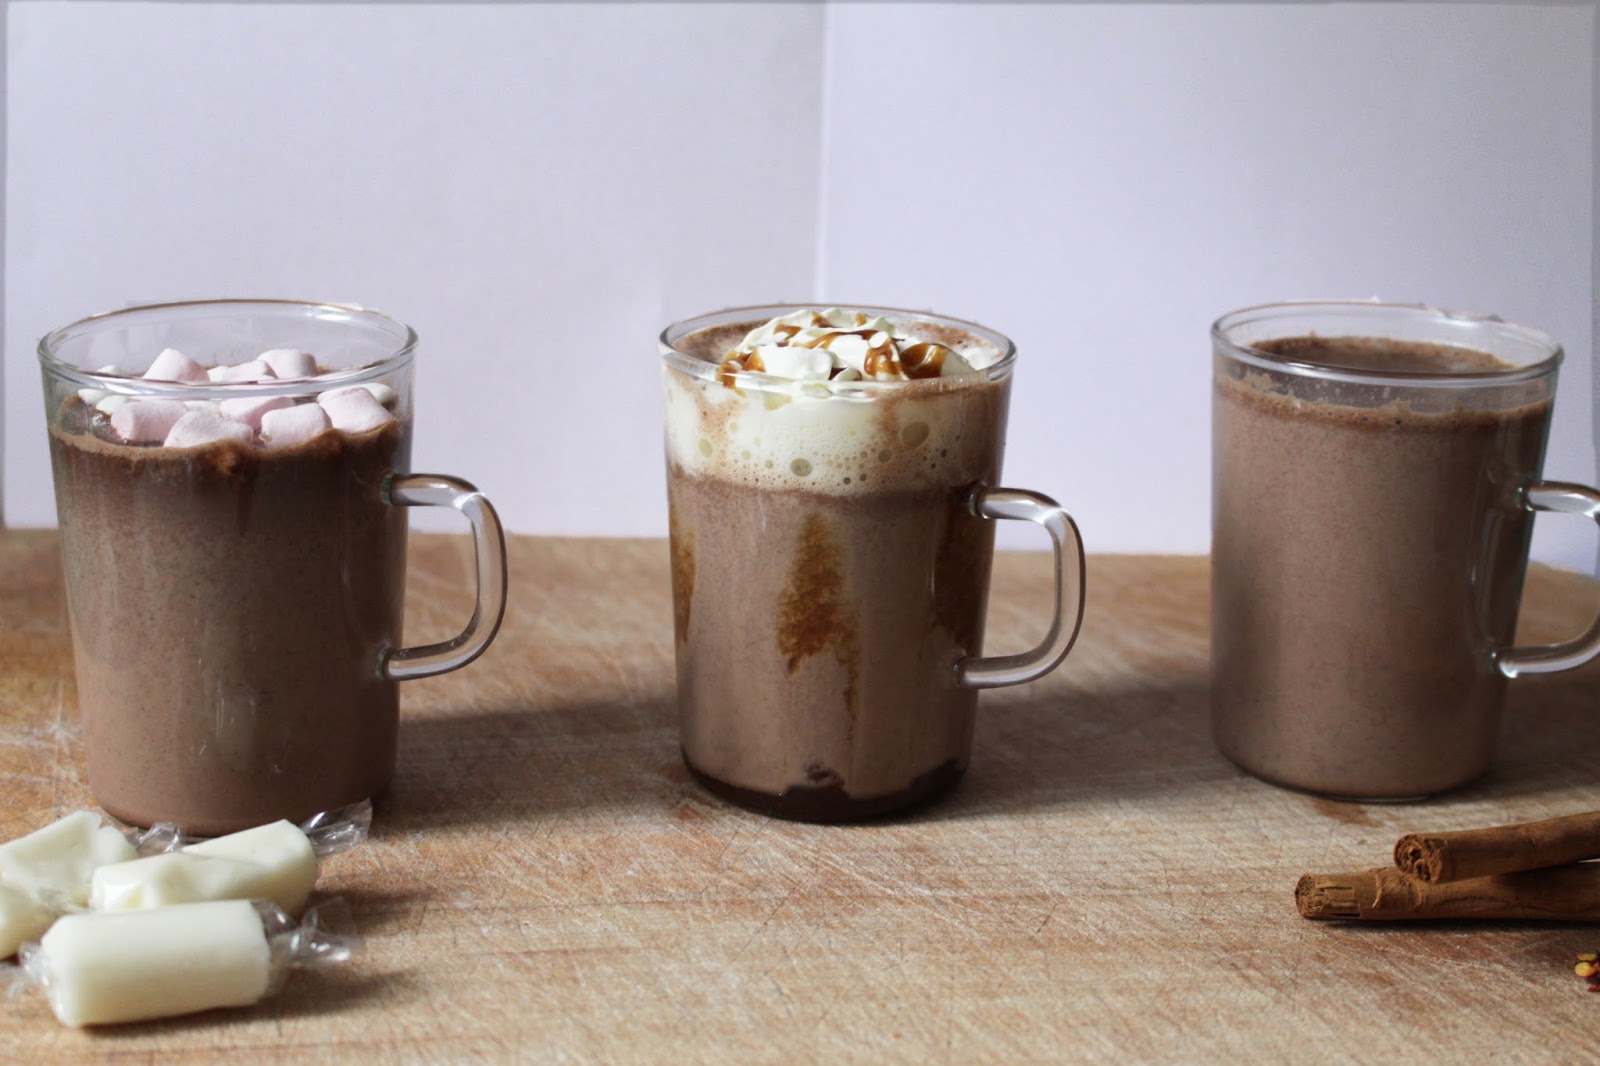 http://flowerspolkadots.blogspot.de/2015/12/hot-chocolate-variations.html